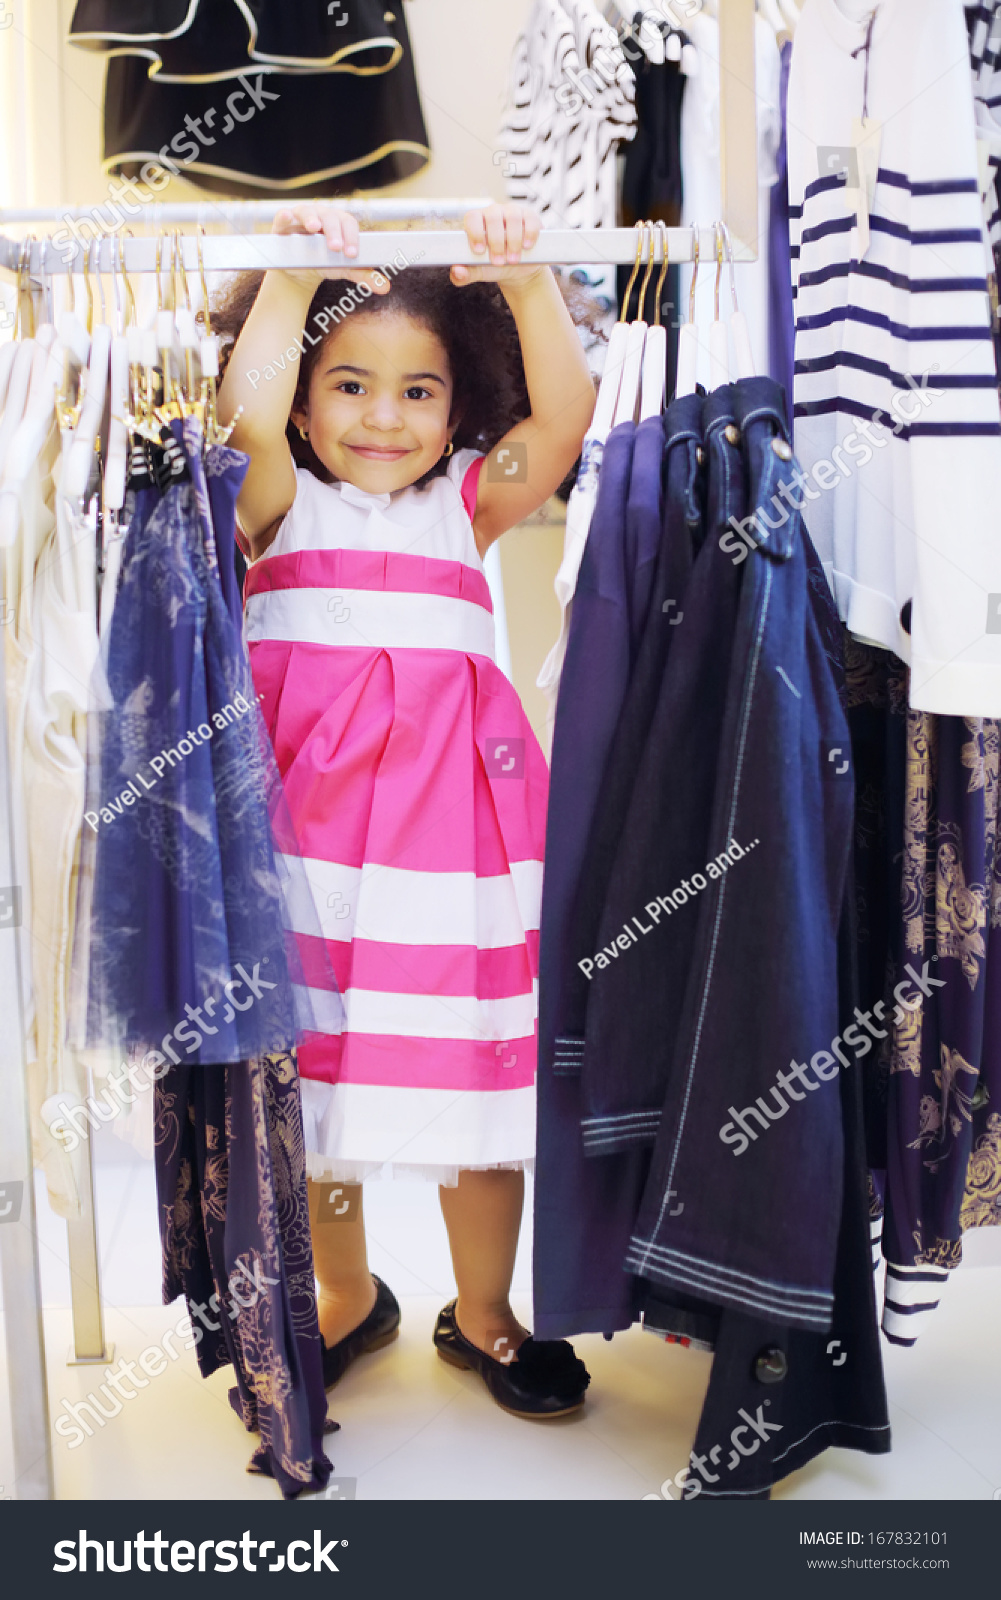 9b680f898 Pretty Little Girl Dress Stands Near Stock Photo (Edit Now ...